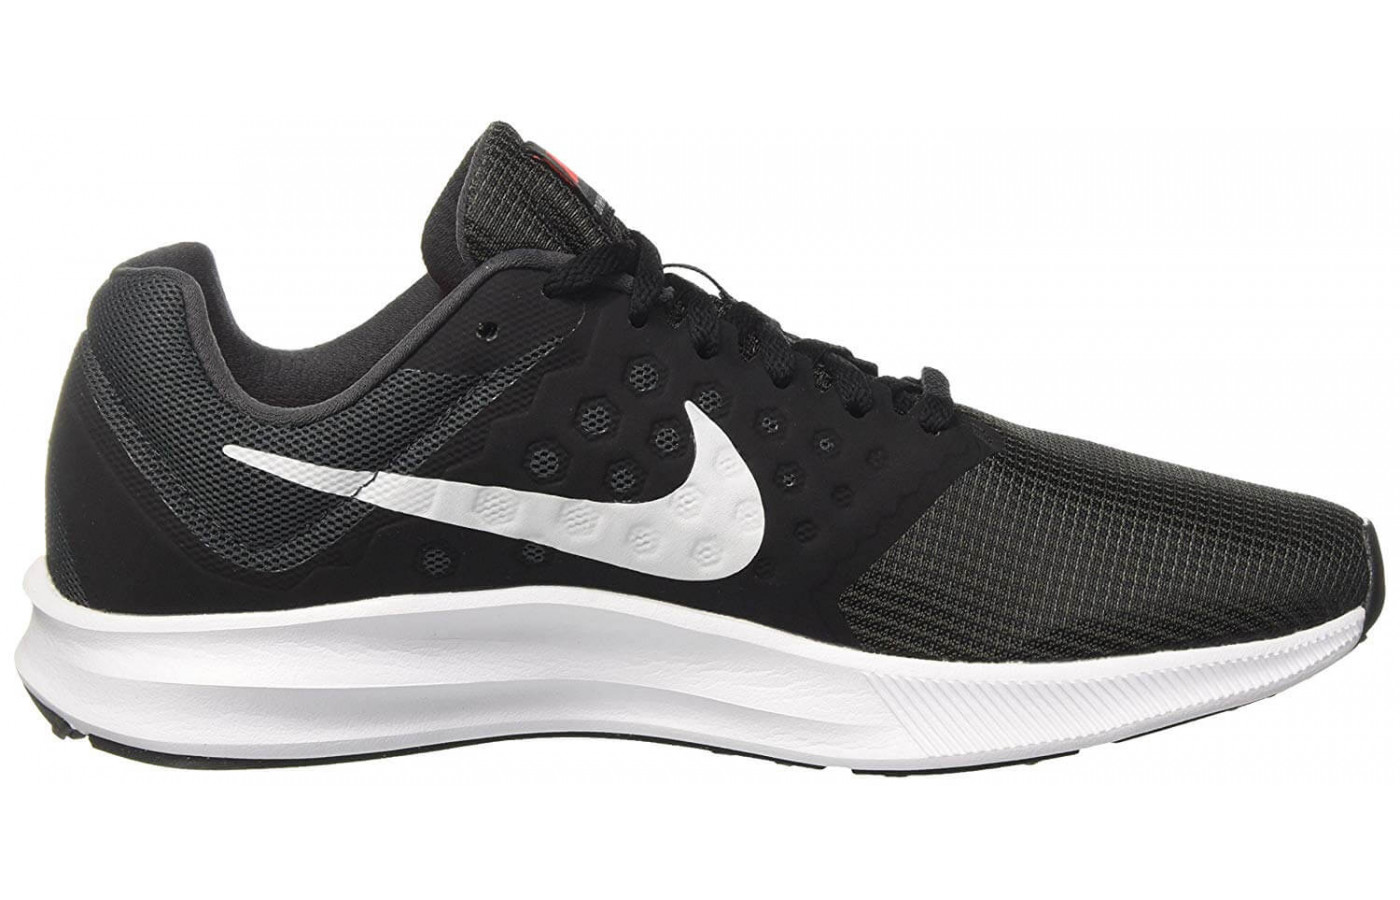 Nike Downshifter 7 Reviewed - To Buy or Not in Mar 2019  d6fa04d7813